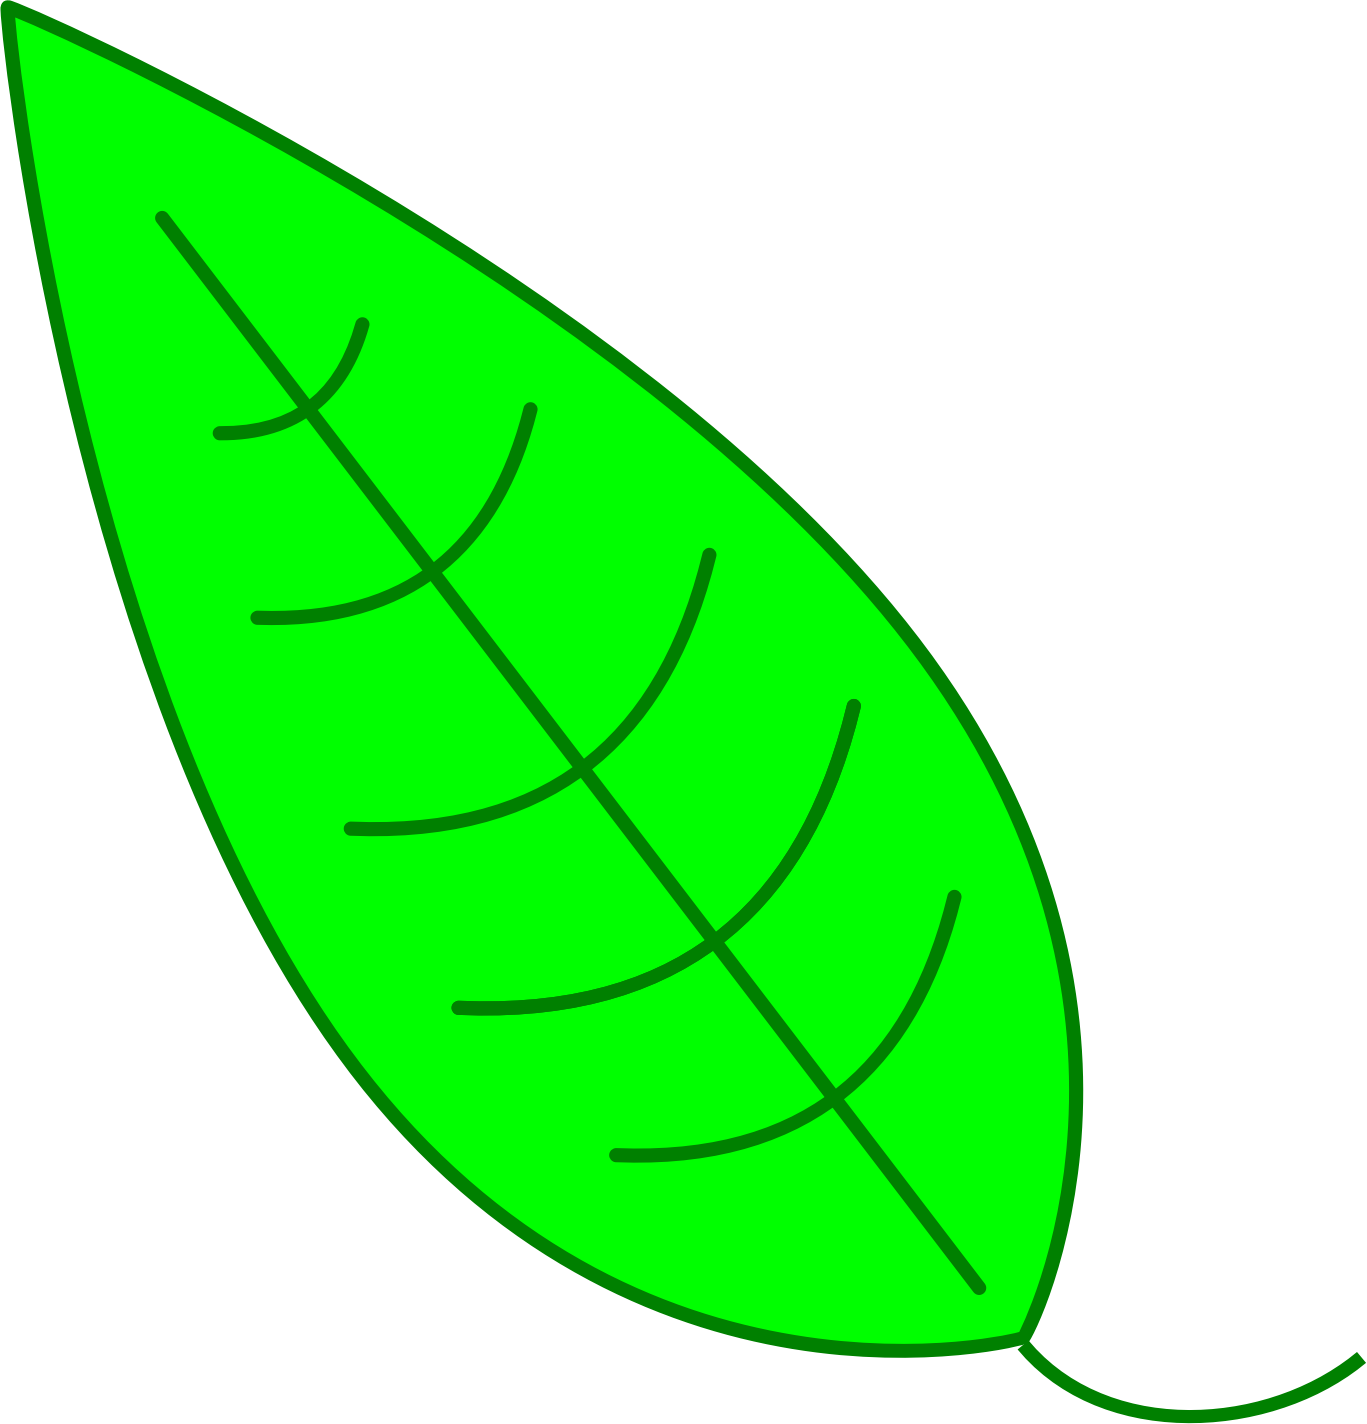 Leaf - Green Simple Leaf by simpletutorials.net